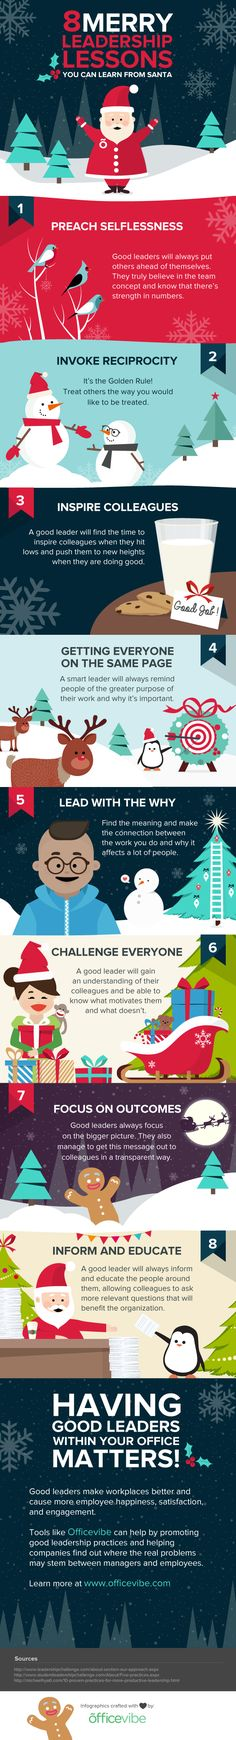 8 Merry Leadership Lessons You Can Learn From Santa.